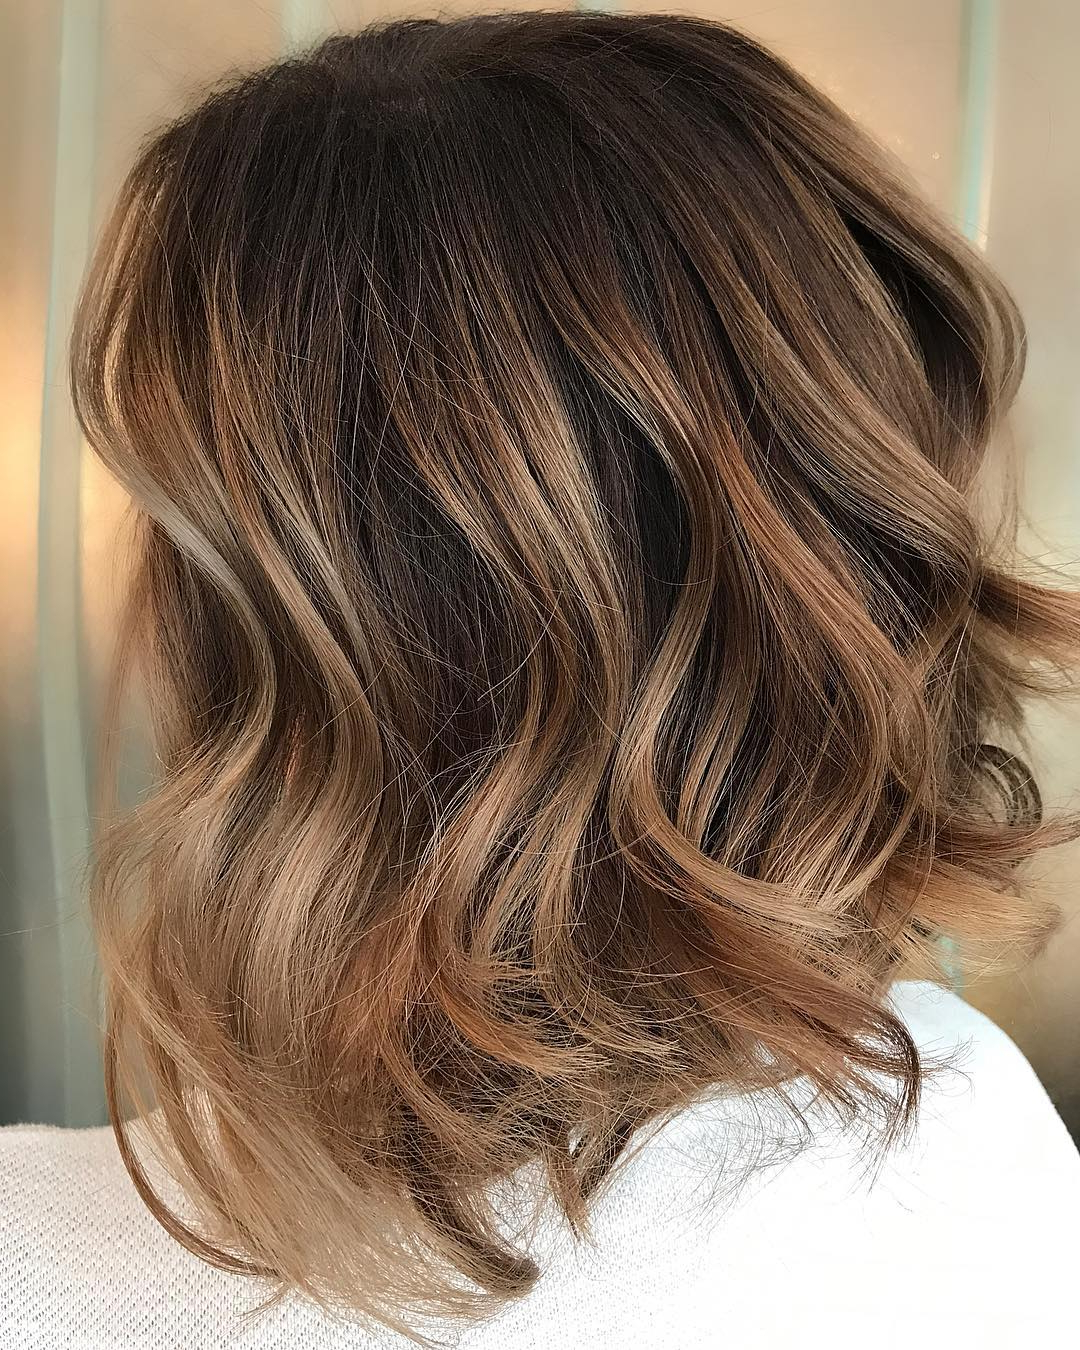 10 Trendy Brown Balayage Hairstyles For Medium Length Hair 2019 Regarding Most Popular Long Layered Light Chocolate Brown Haircuts (View 1 of 20)